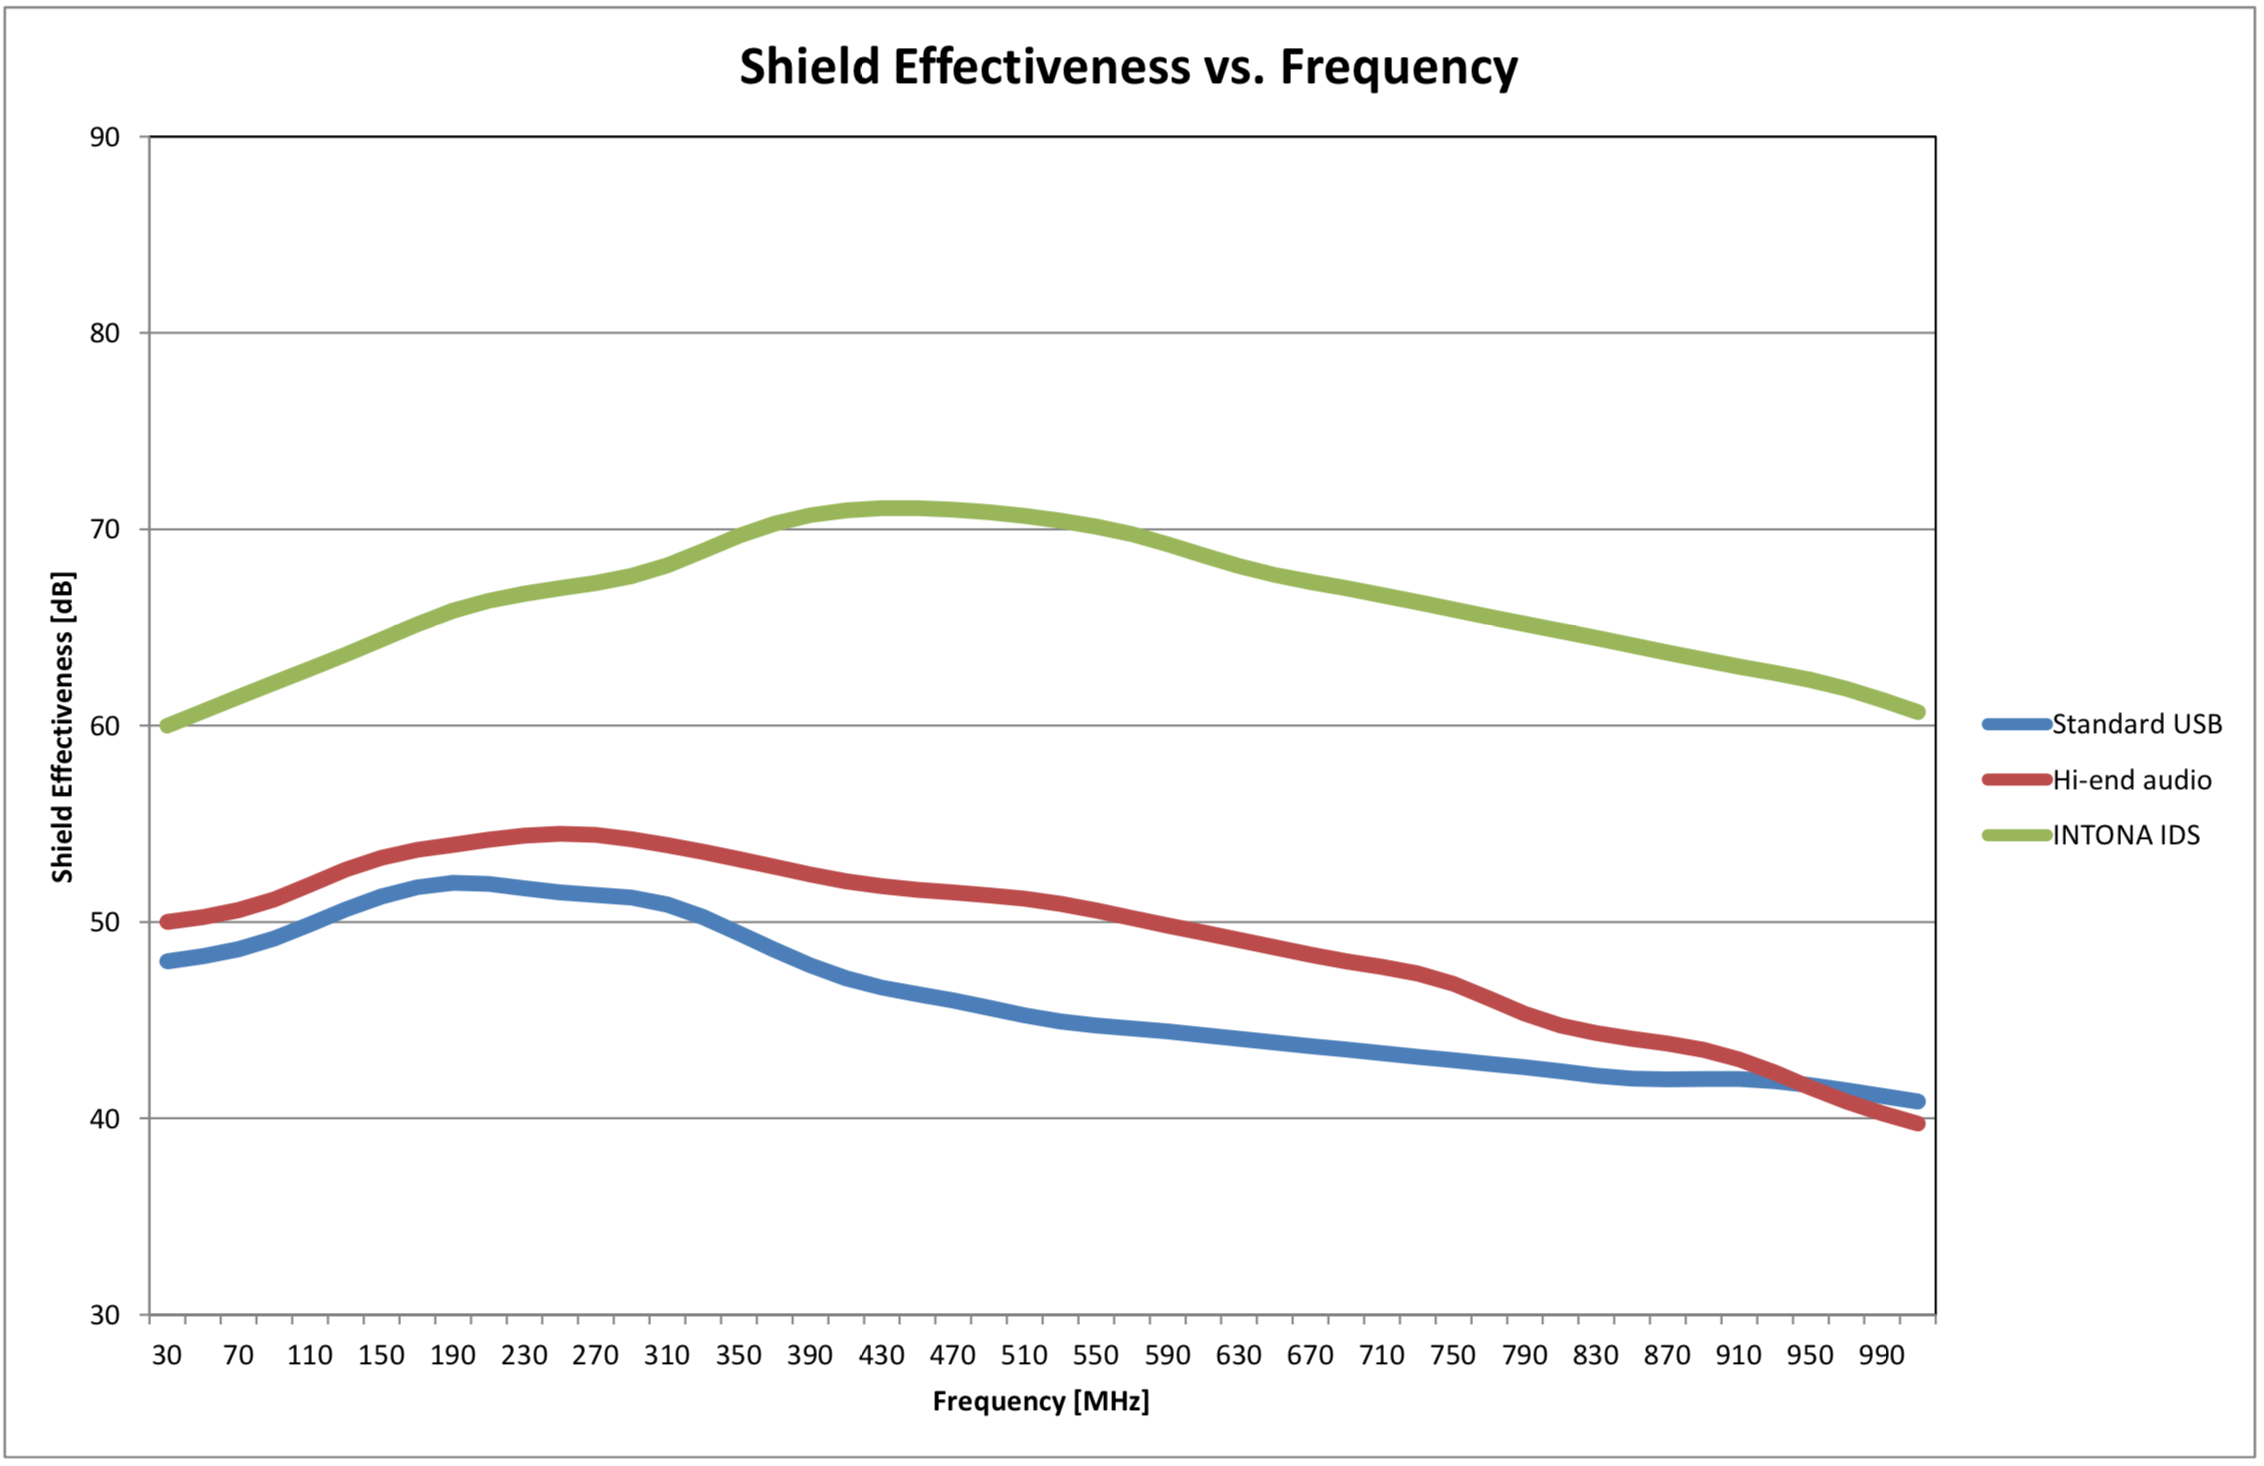 shielding_effectiveness.png?nc=1526474551